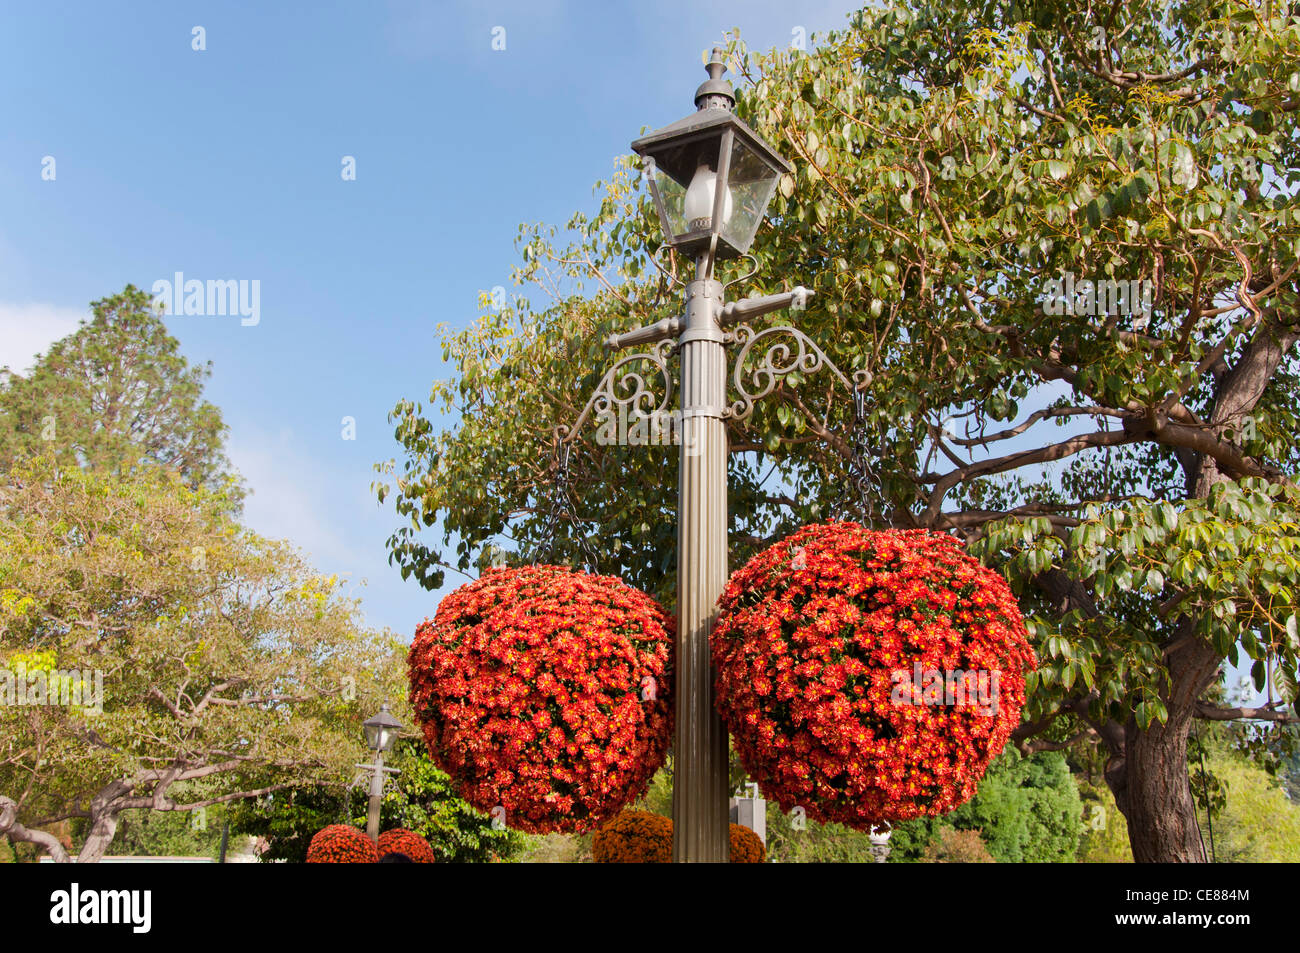 Ball Shaped Flowers Stock Photos & Ball Shaped Flowers Stock Images ...